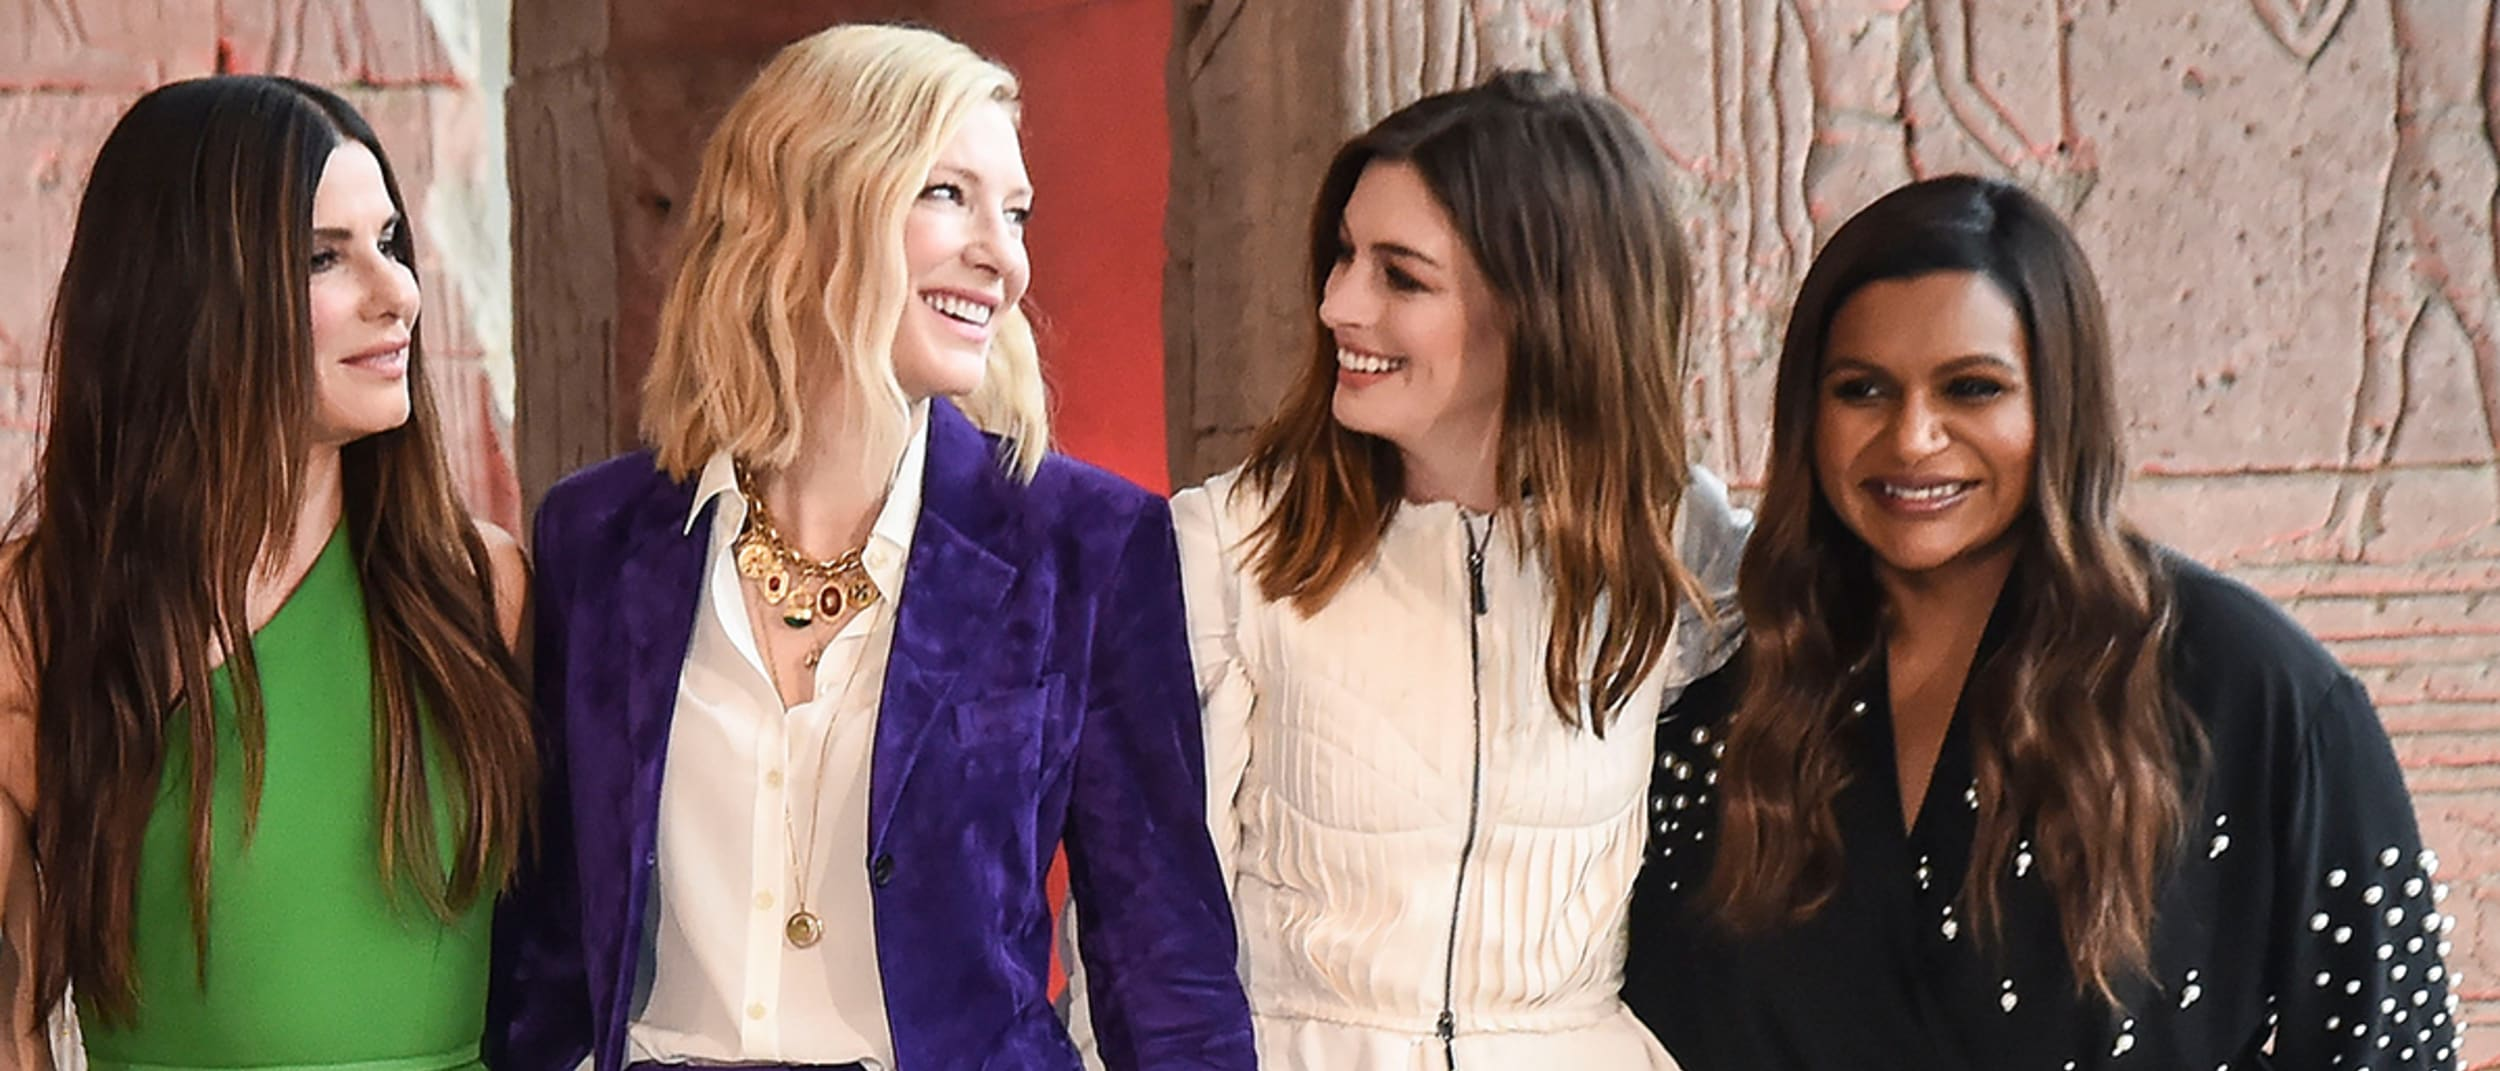 Ocean's 8 style: which cast member are you?